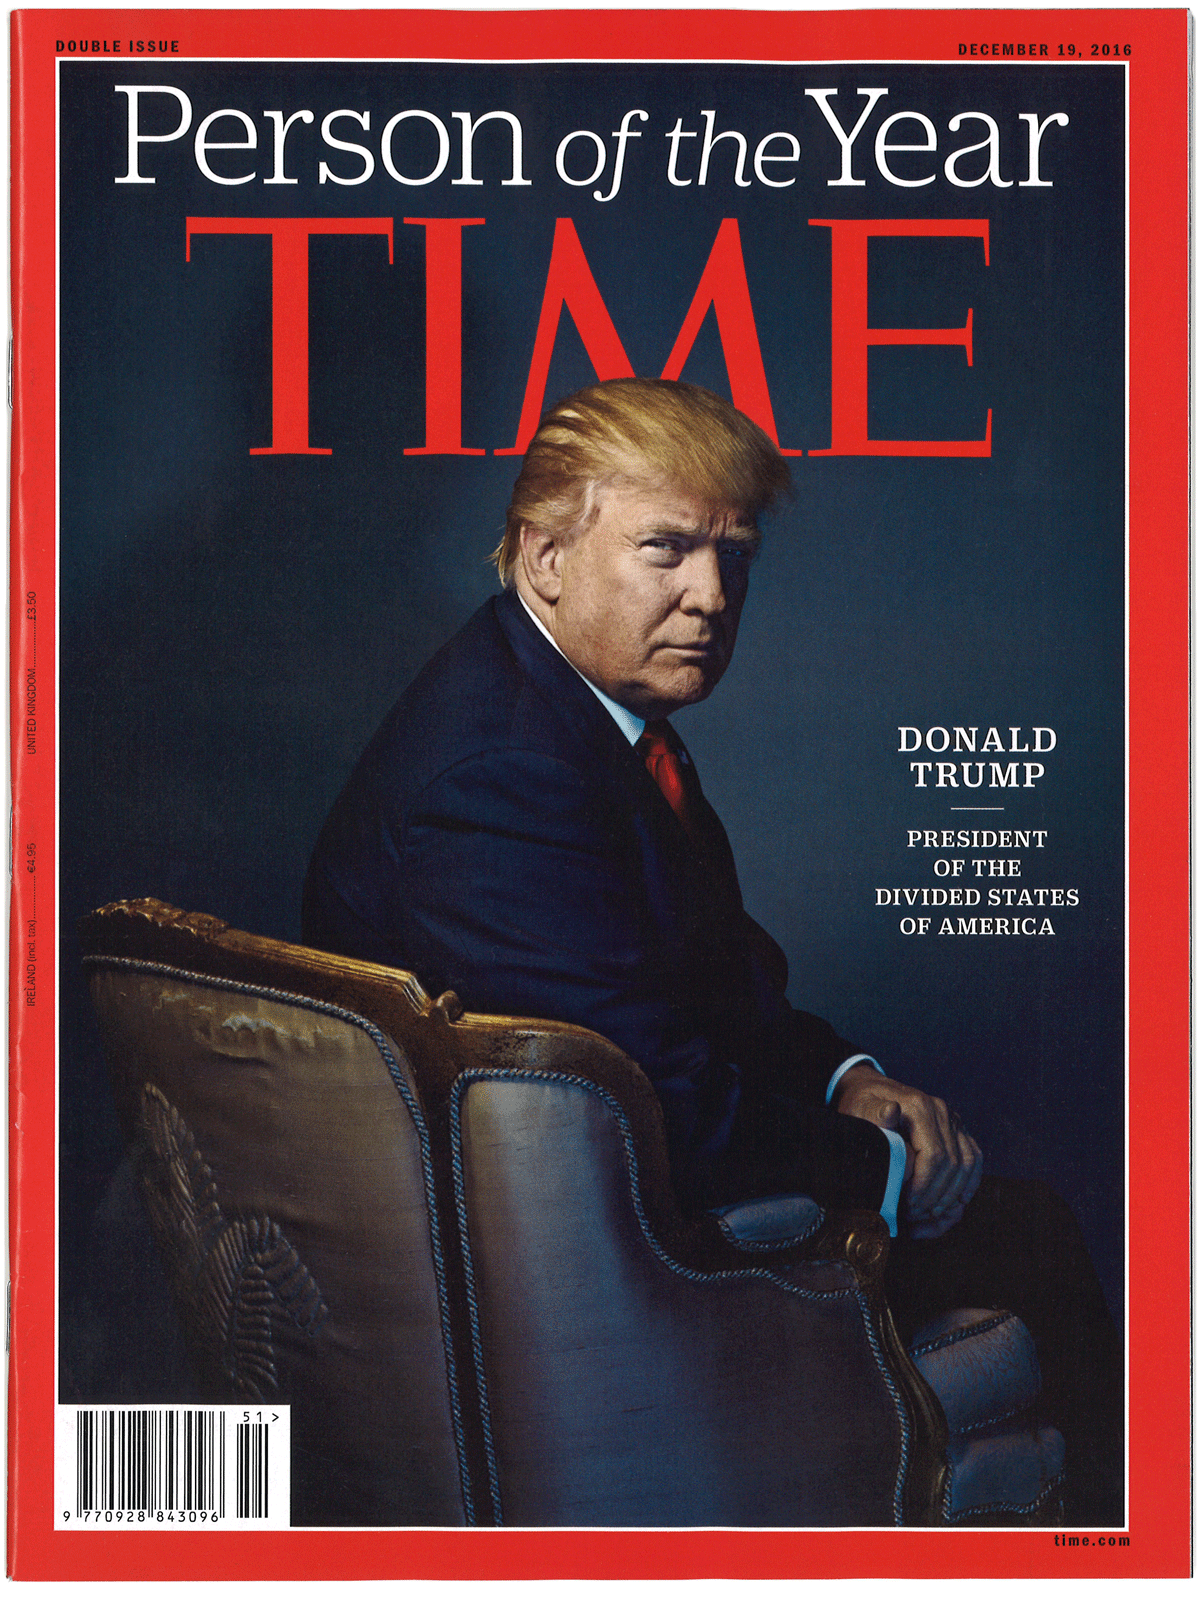 Time magazine's December 19 issue